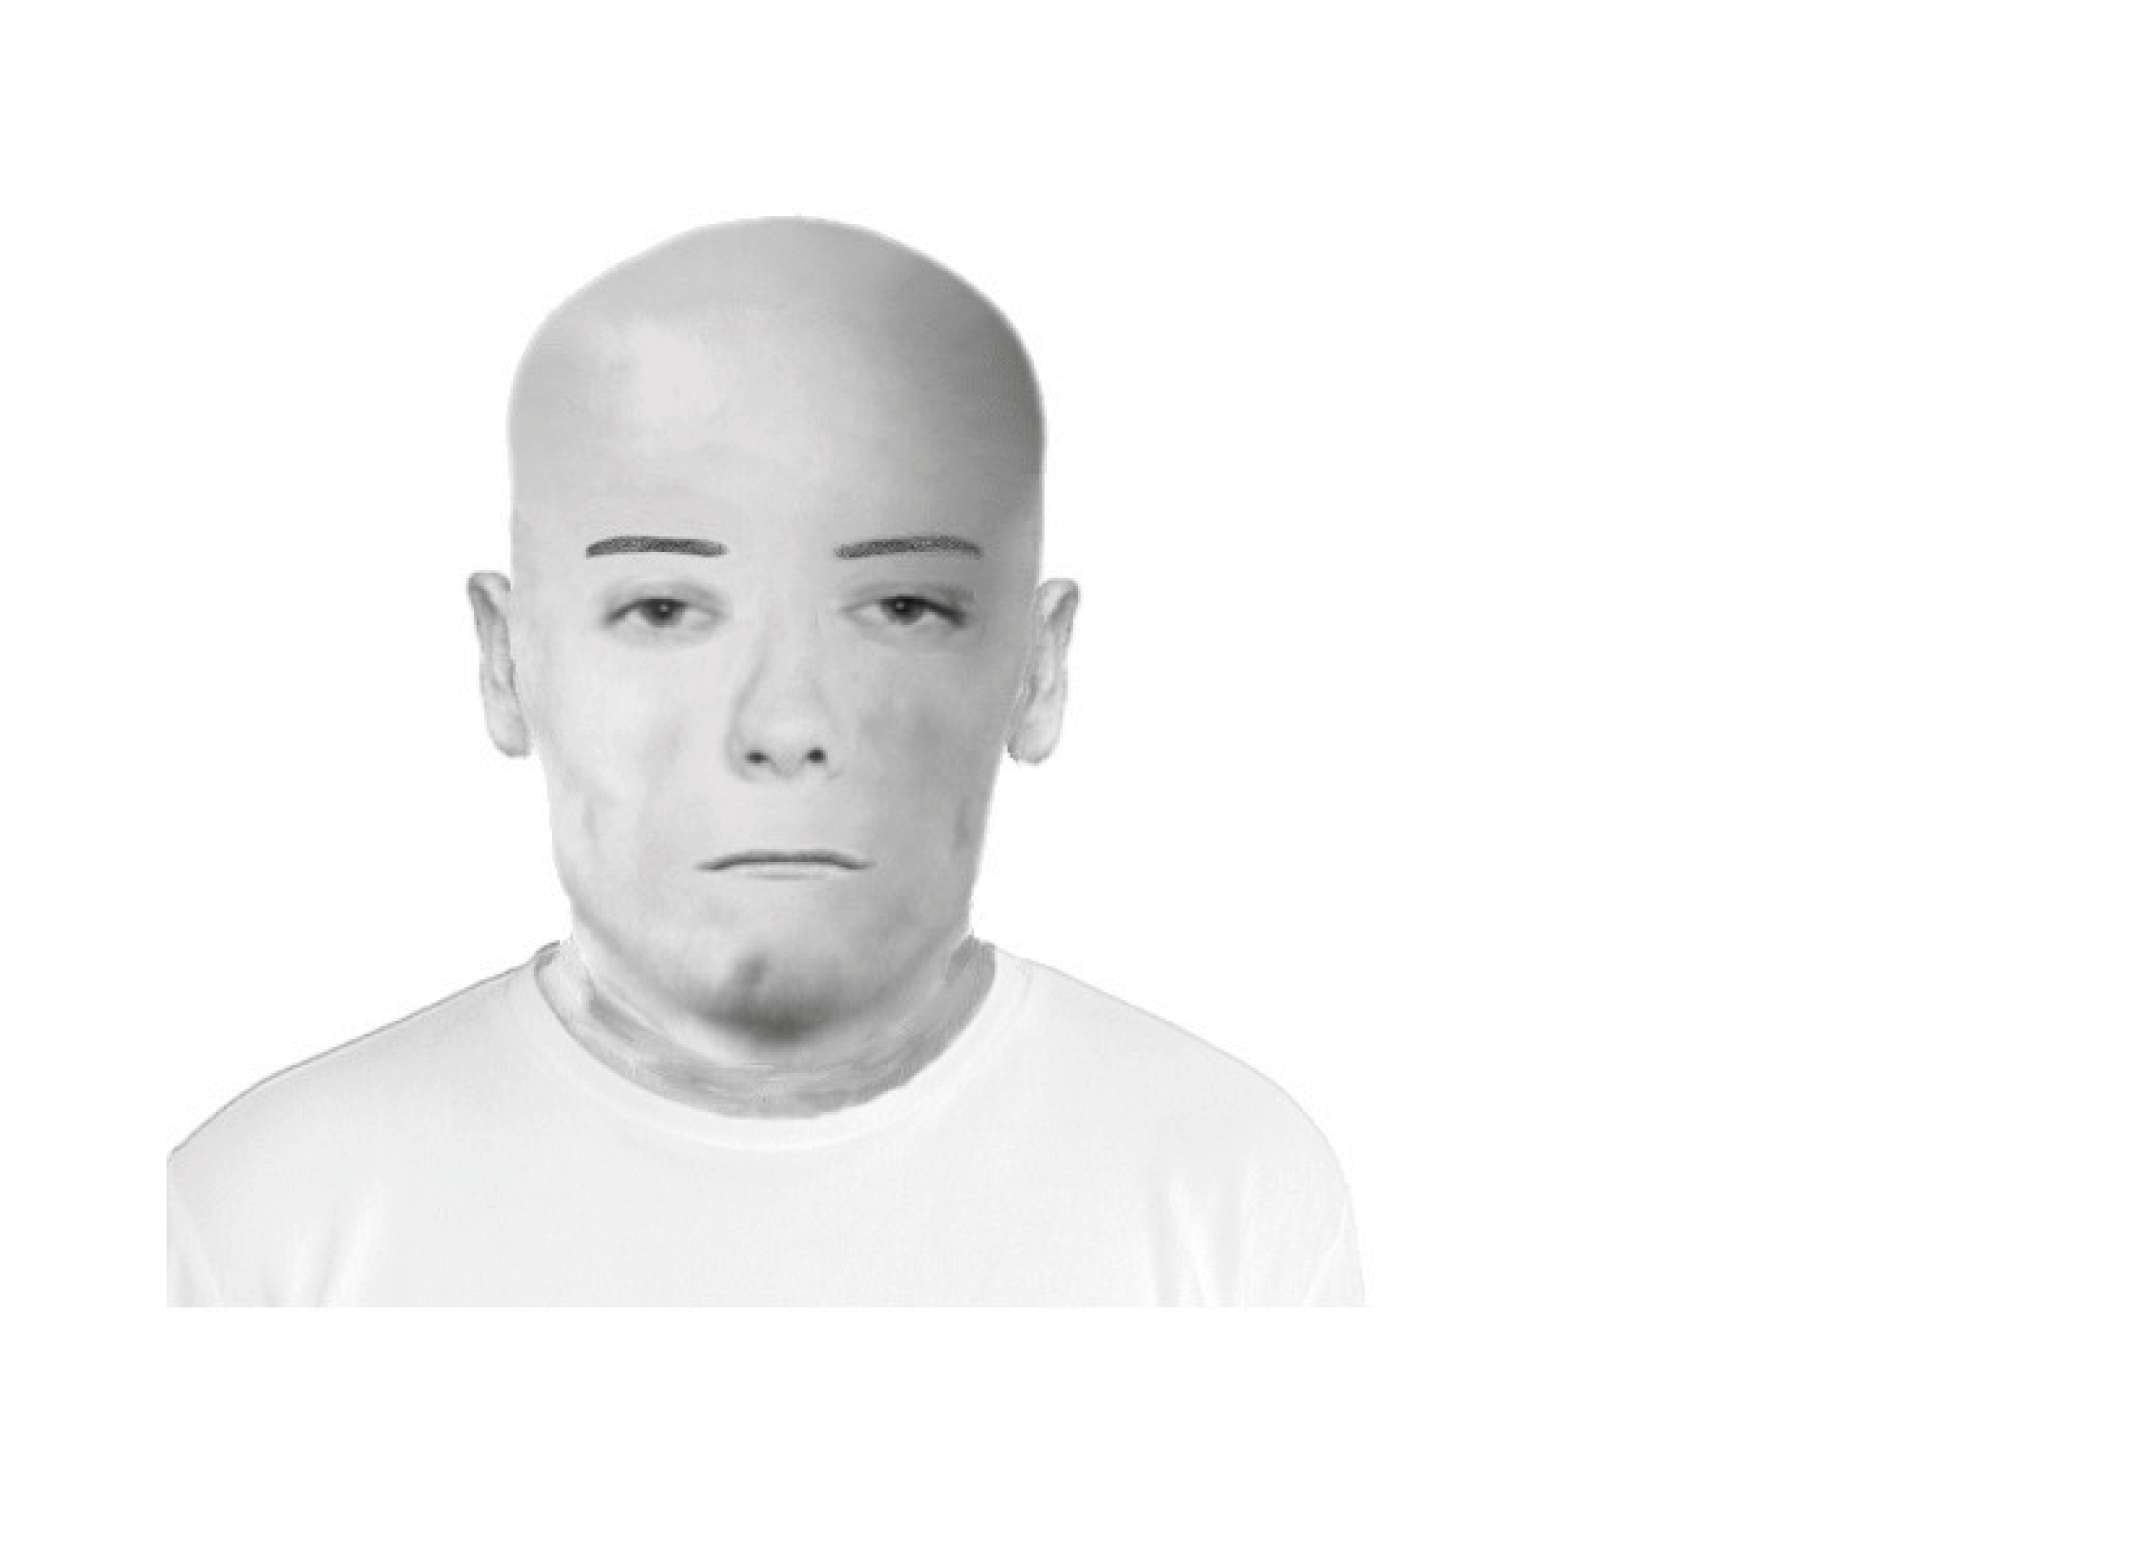 EFIT: Do you recognise this man?